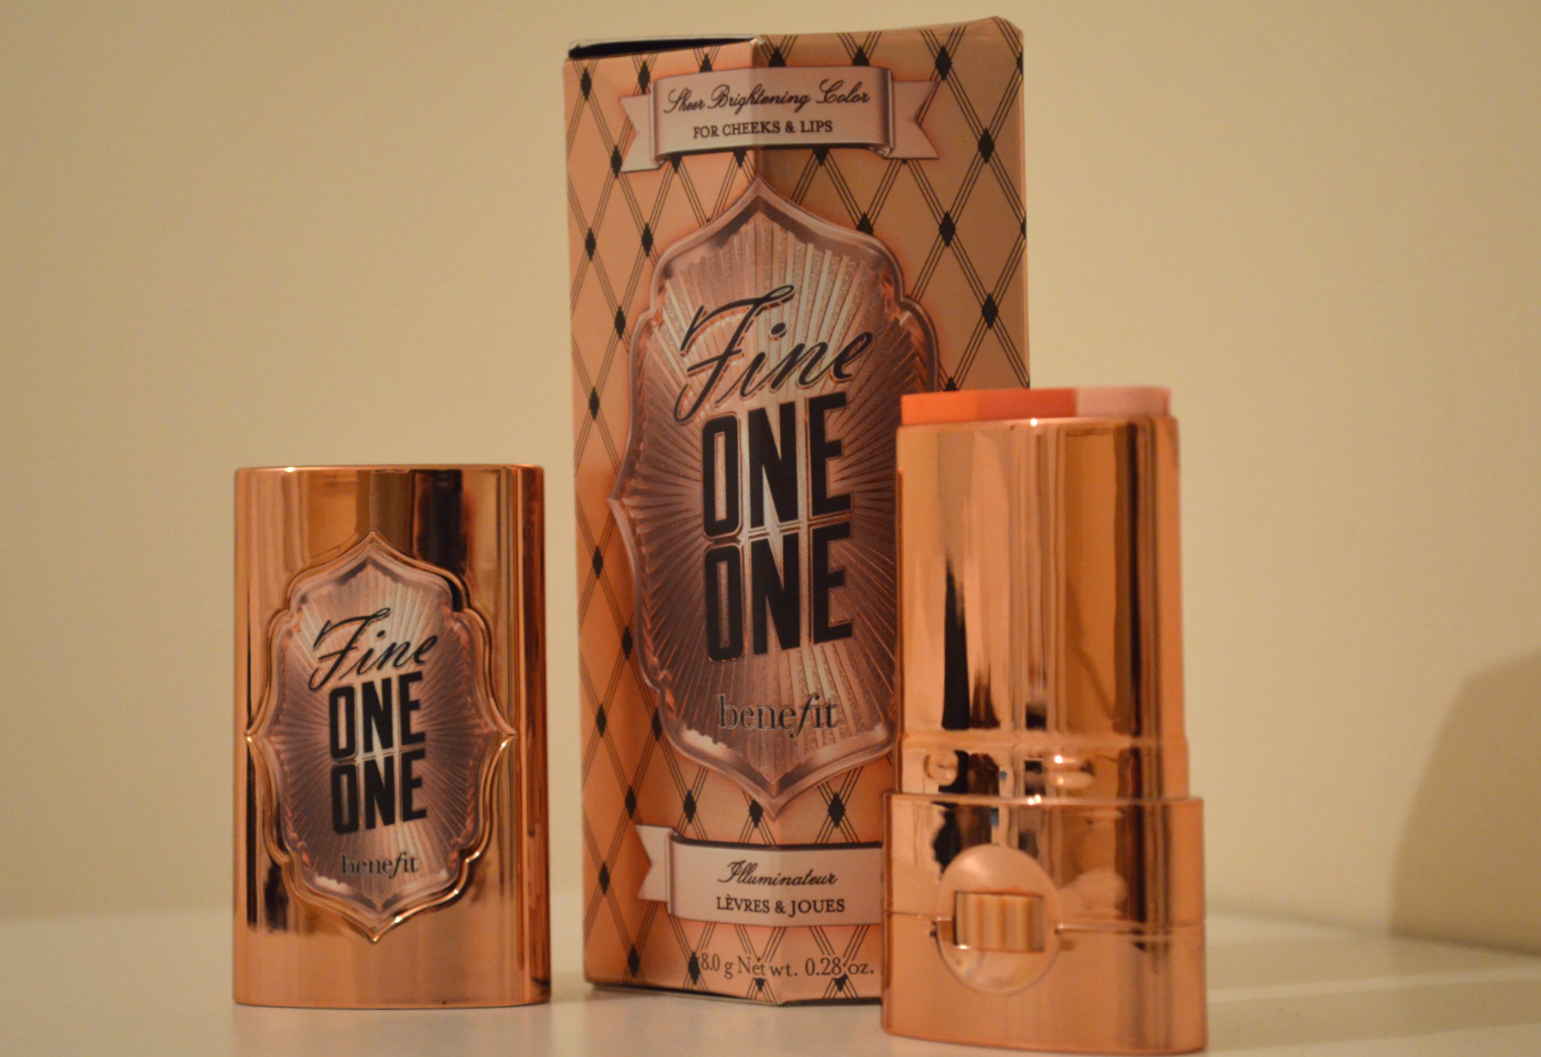 Fine-One-One Sheer Brightening Color for Cheeks & Lips by Benefit #17